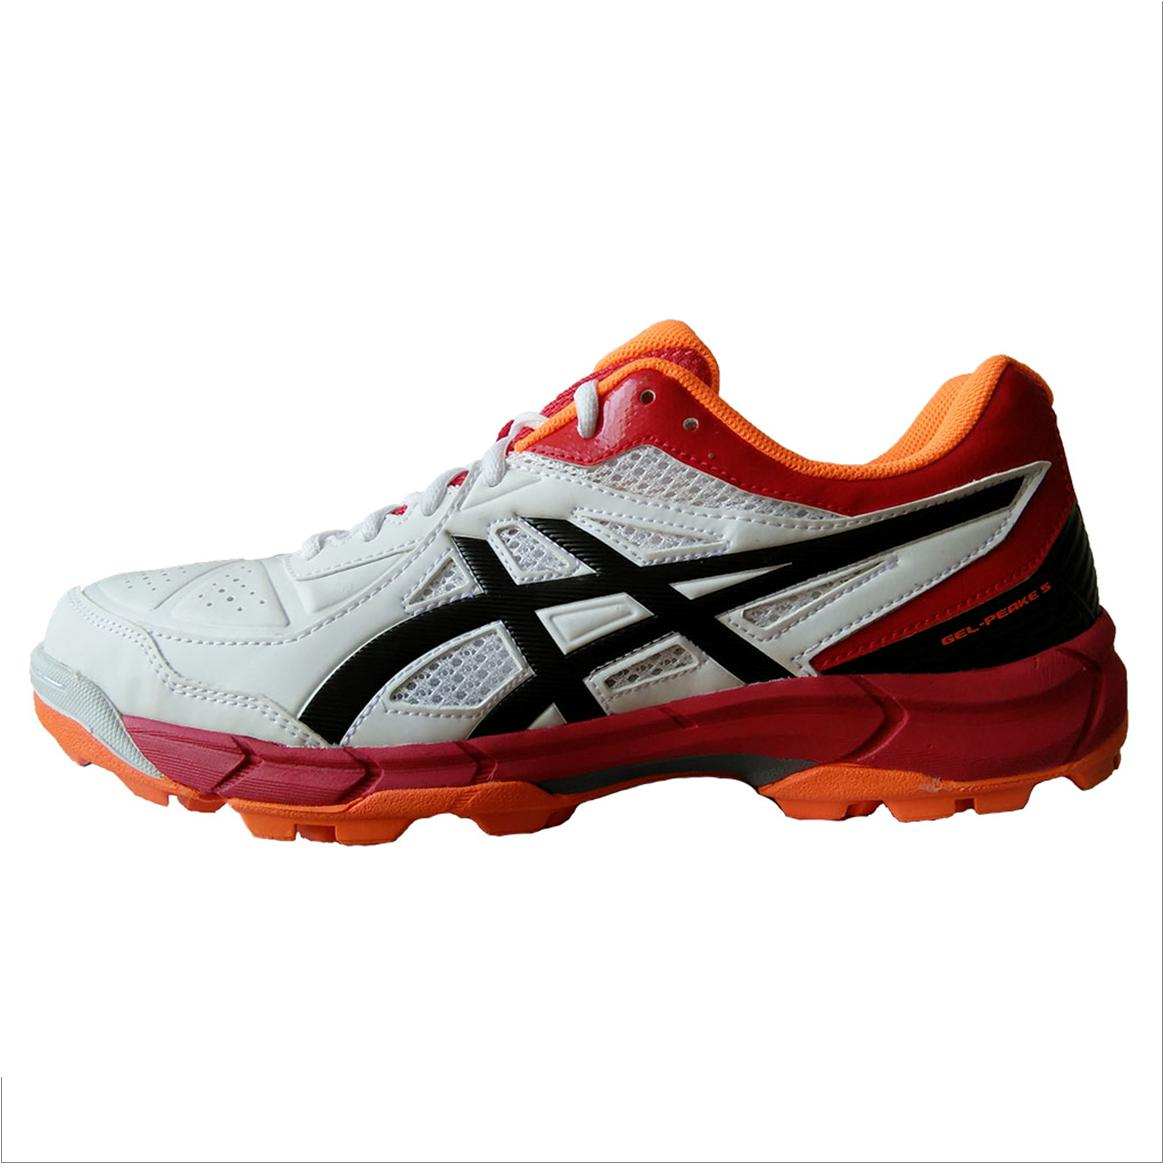 42474358d6fb9 Asics Gel Peake 5 Cricket Shoes White Black and Red